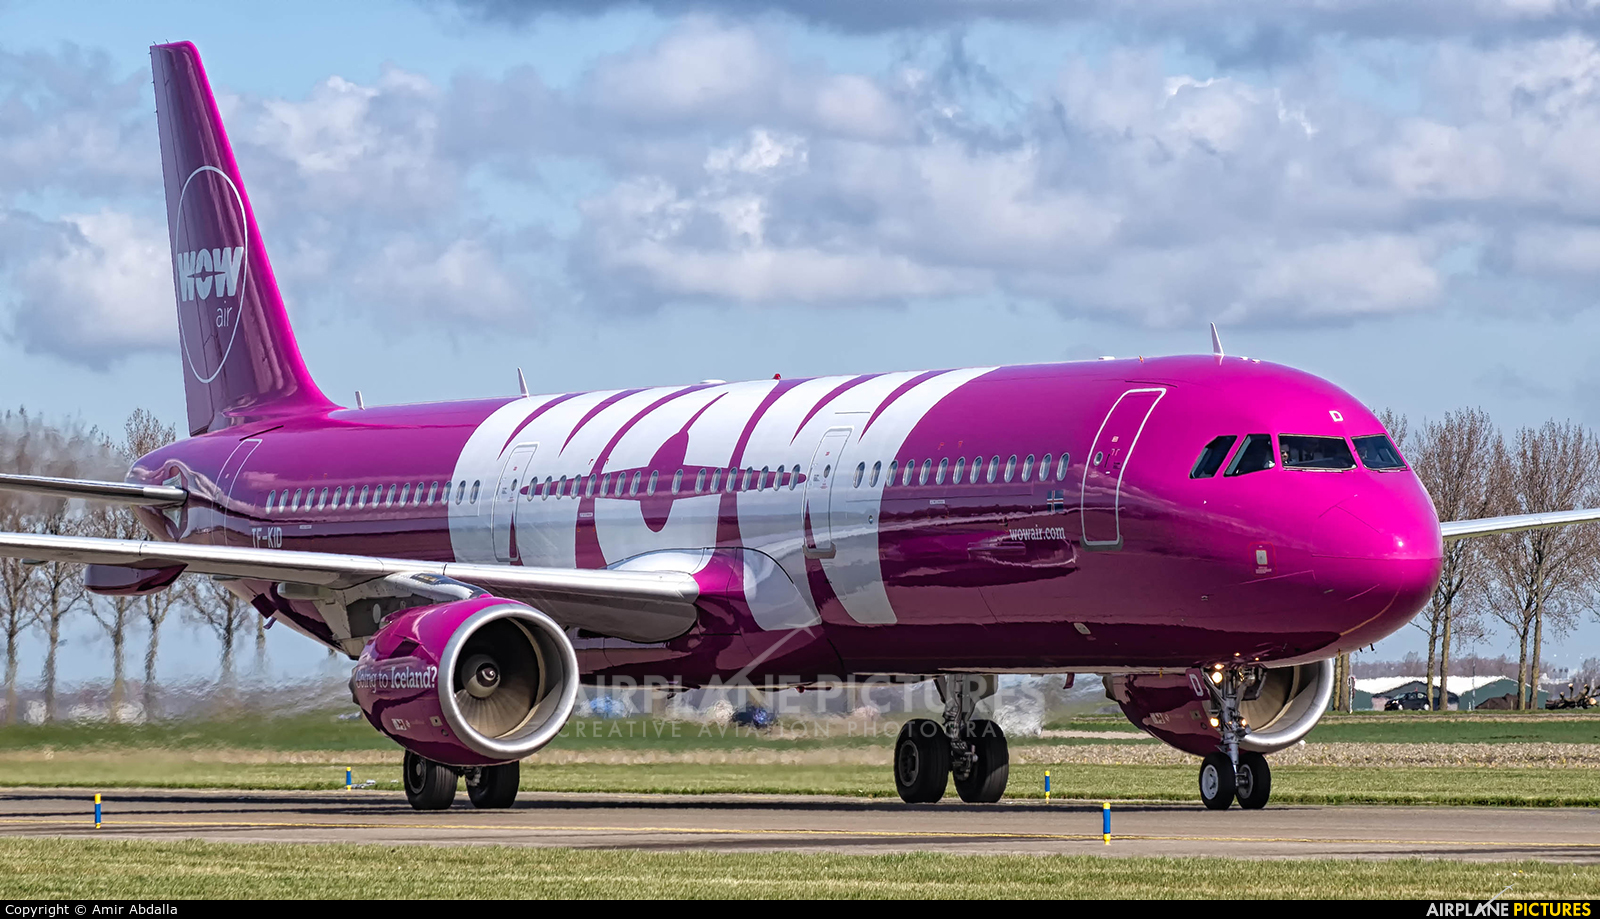 Image result for Wowair plane